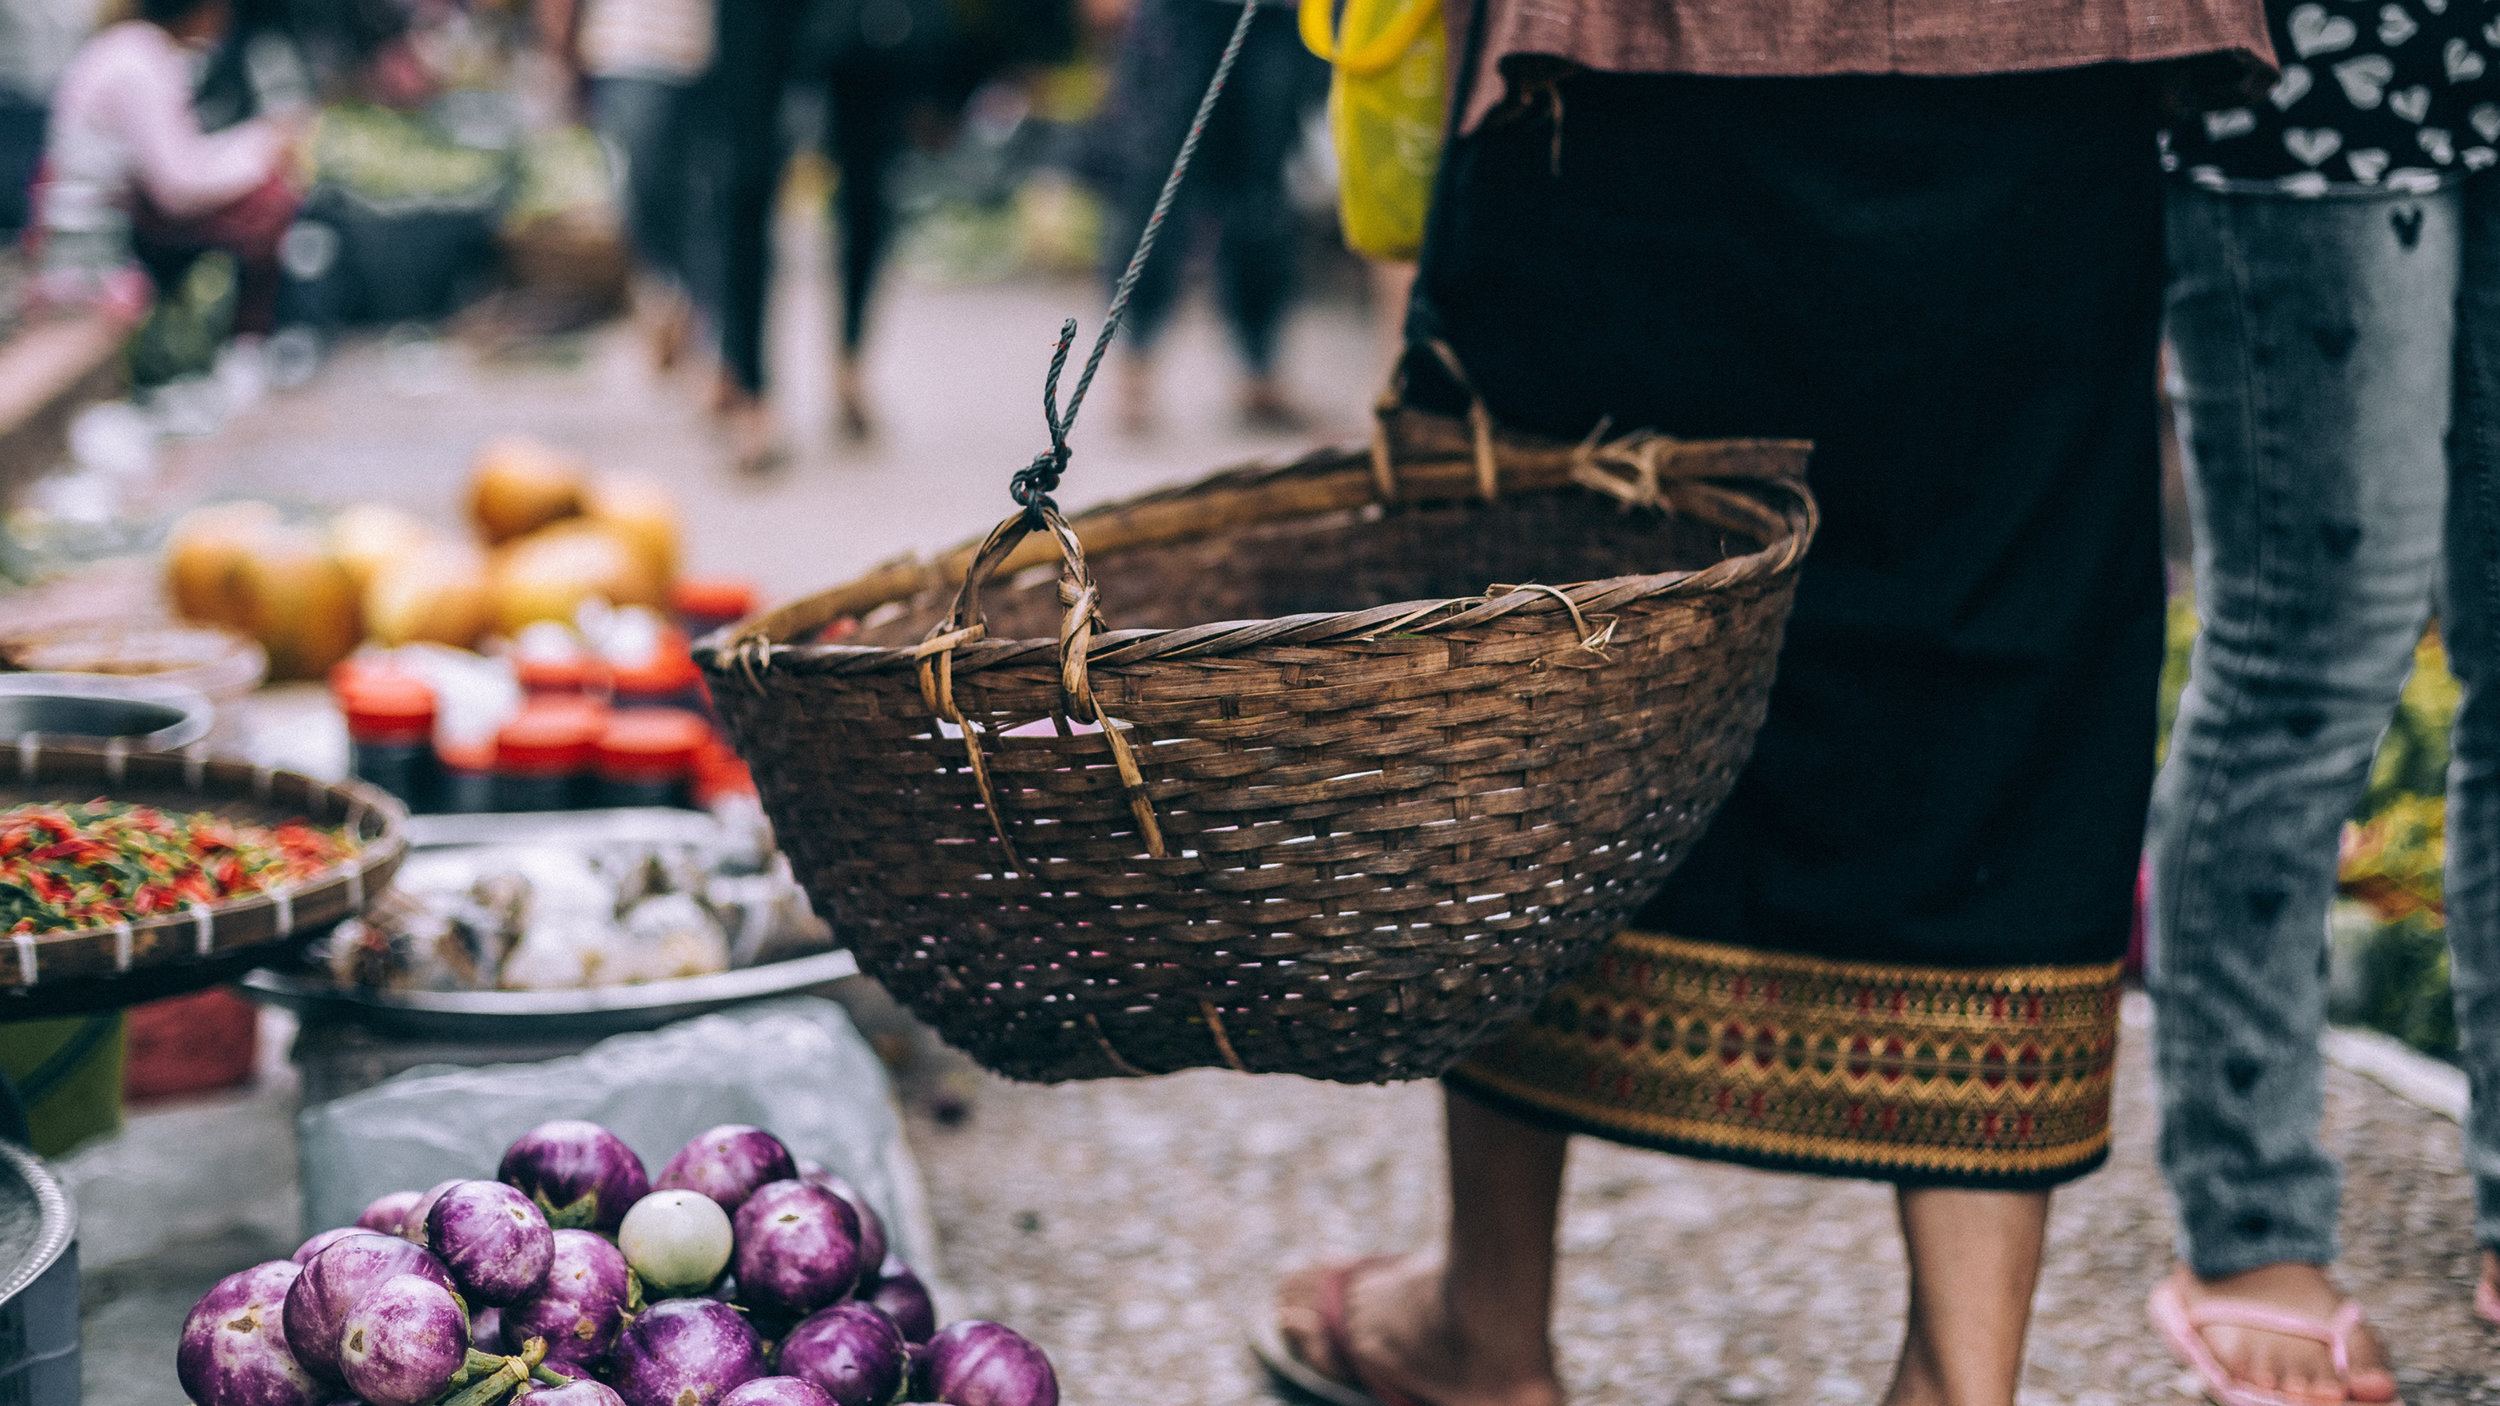 How can we make solutions to climate change more accessible by offering a platform for discovery of healthy, flavorful, and sustainable food options in a way that makes people feel excited and empowered? -